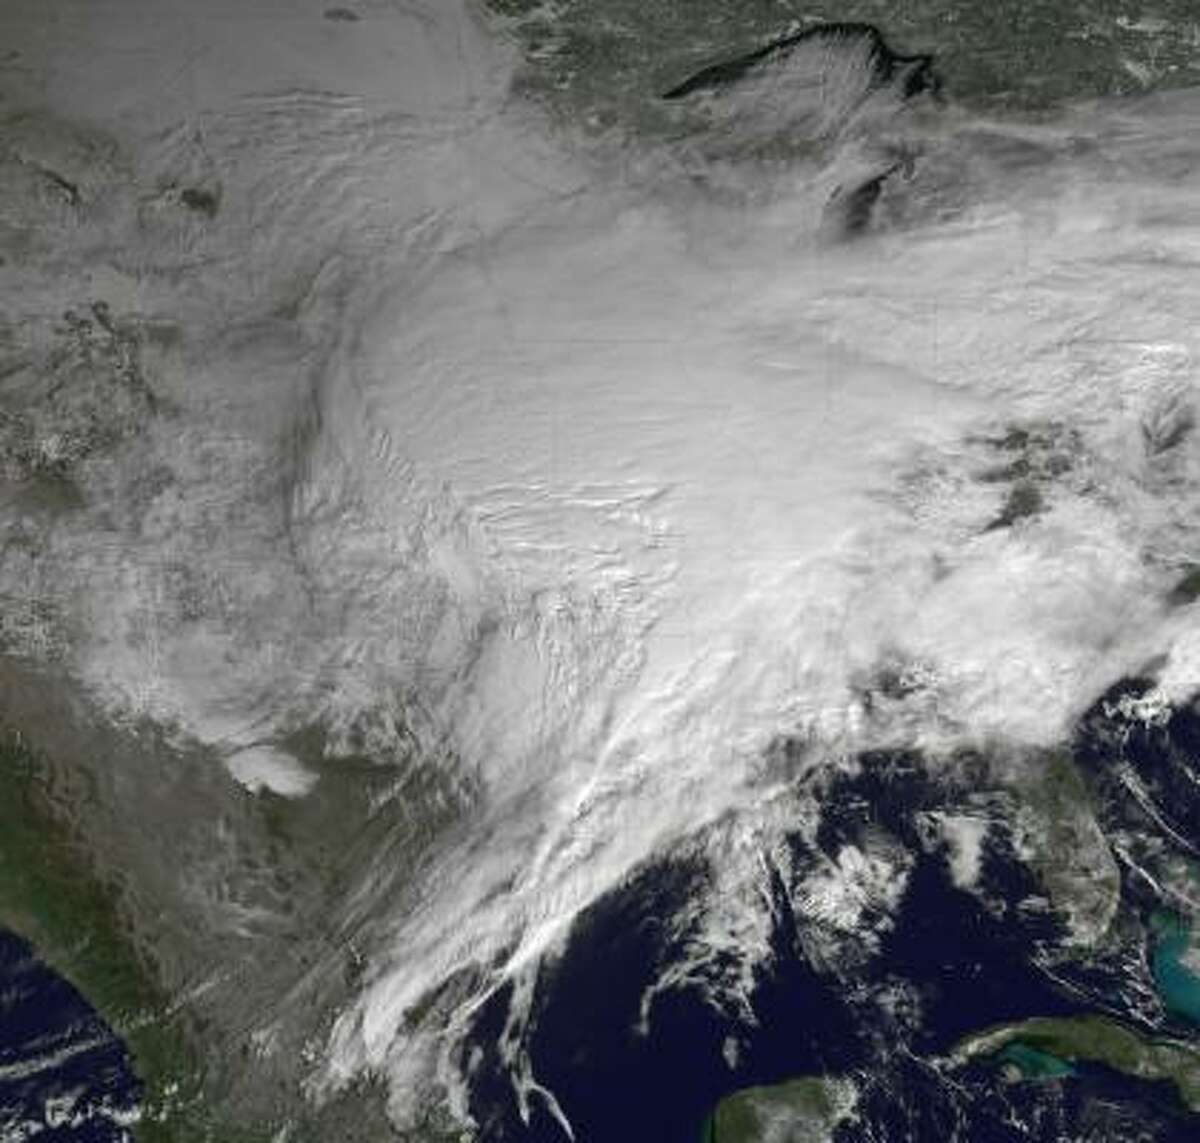 In this GOES-East satellite image from the National Oceanic and Atmosphere Administration (NOAA), a winter storm is seen as it moves across the the U.S. from space. Snow and ice have been falling across the U.S. in what is being reported as the largest winter storm in decades.